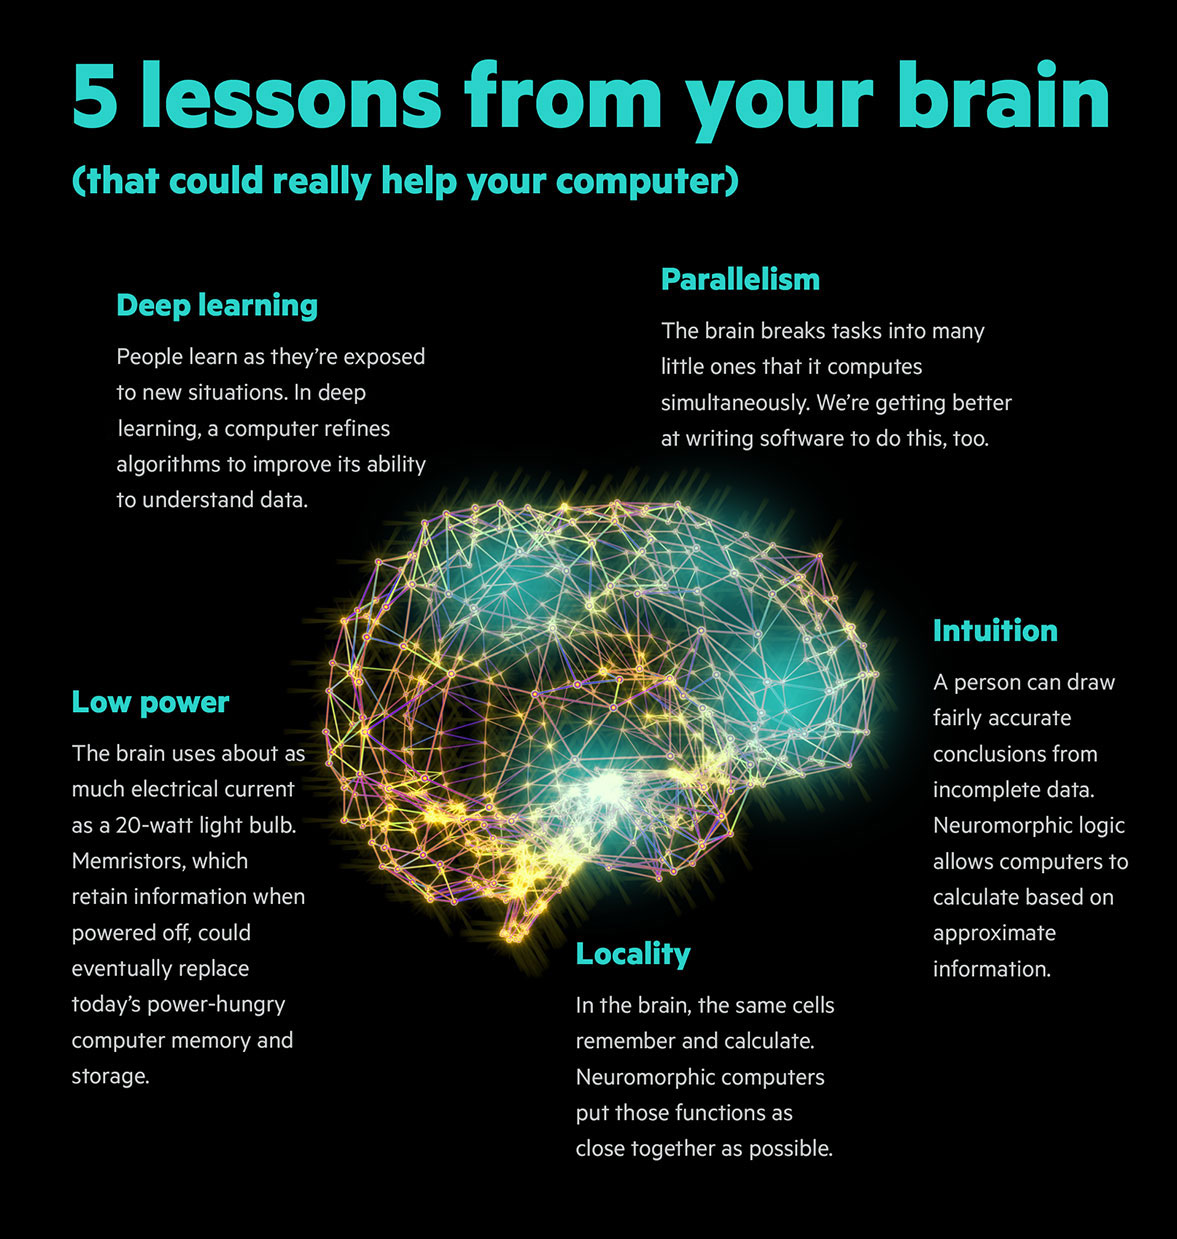 5-lessons-from-your-brain-l